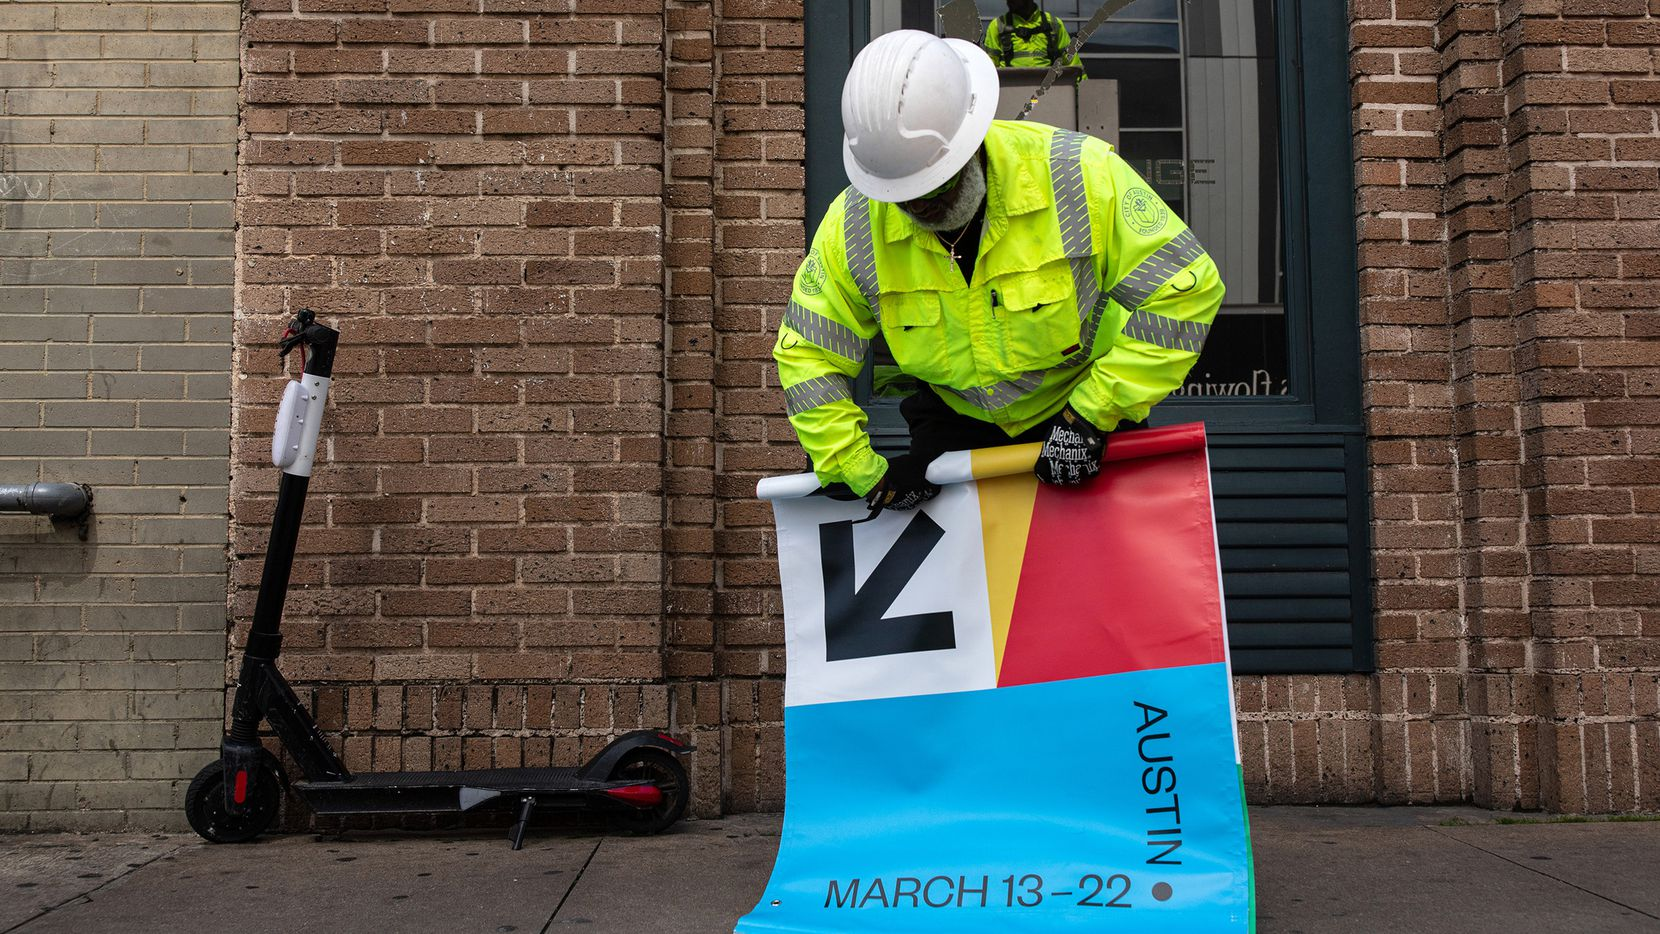 Joseph Alberts rolls up a South by Southwest banner after it was removed from a lamp post in downtown Austin.